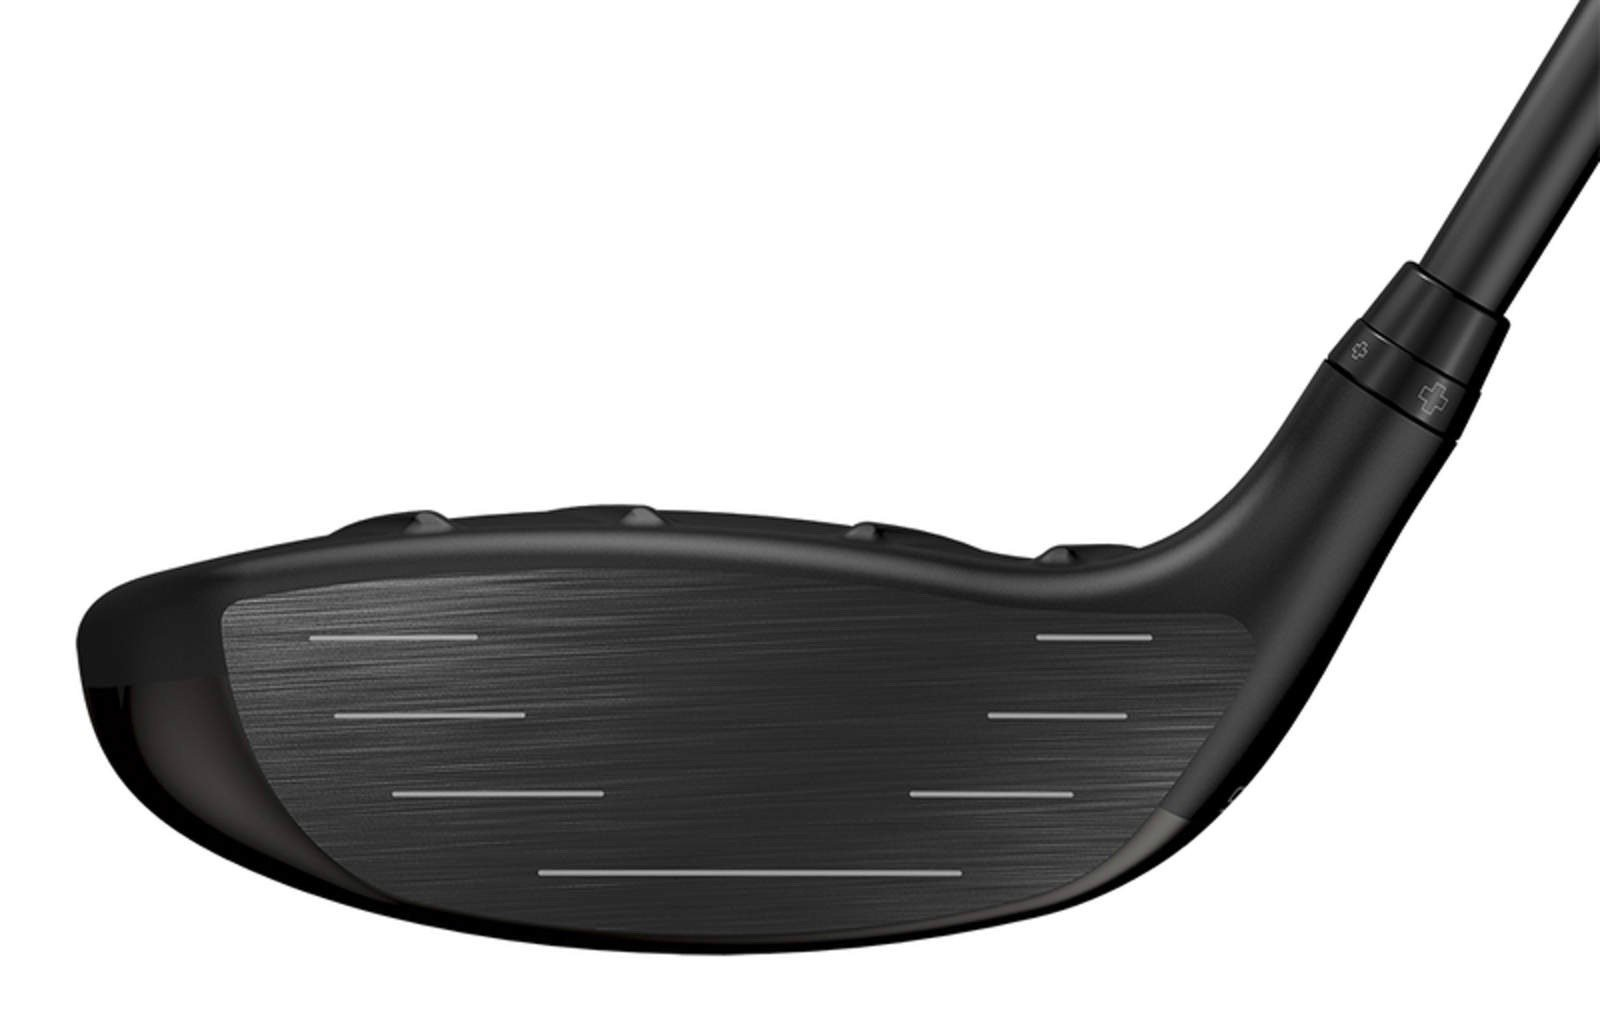 Ping G Fairway Wood clubface